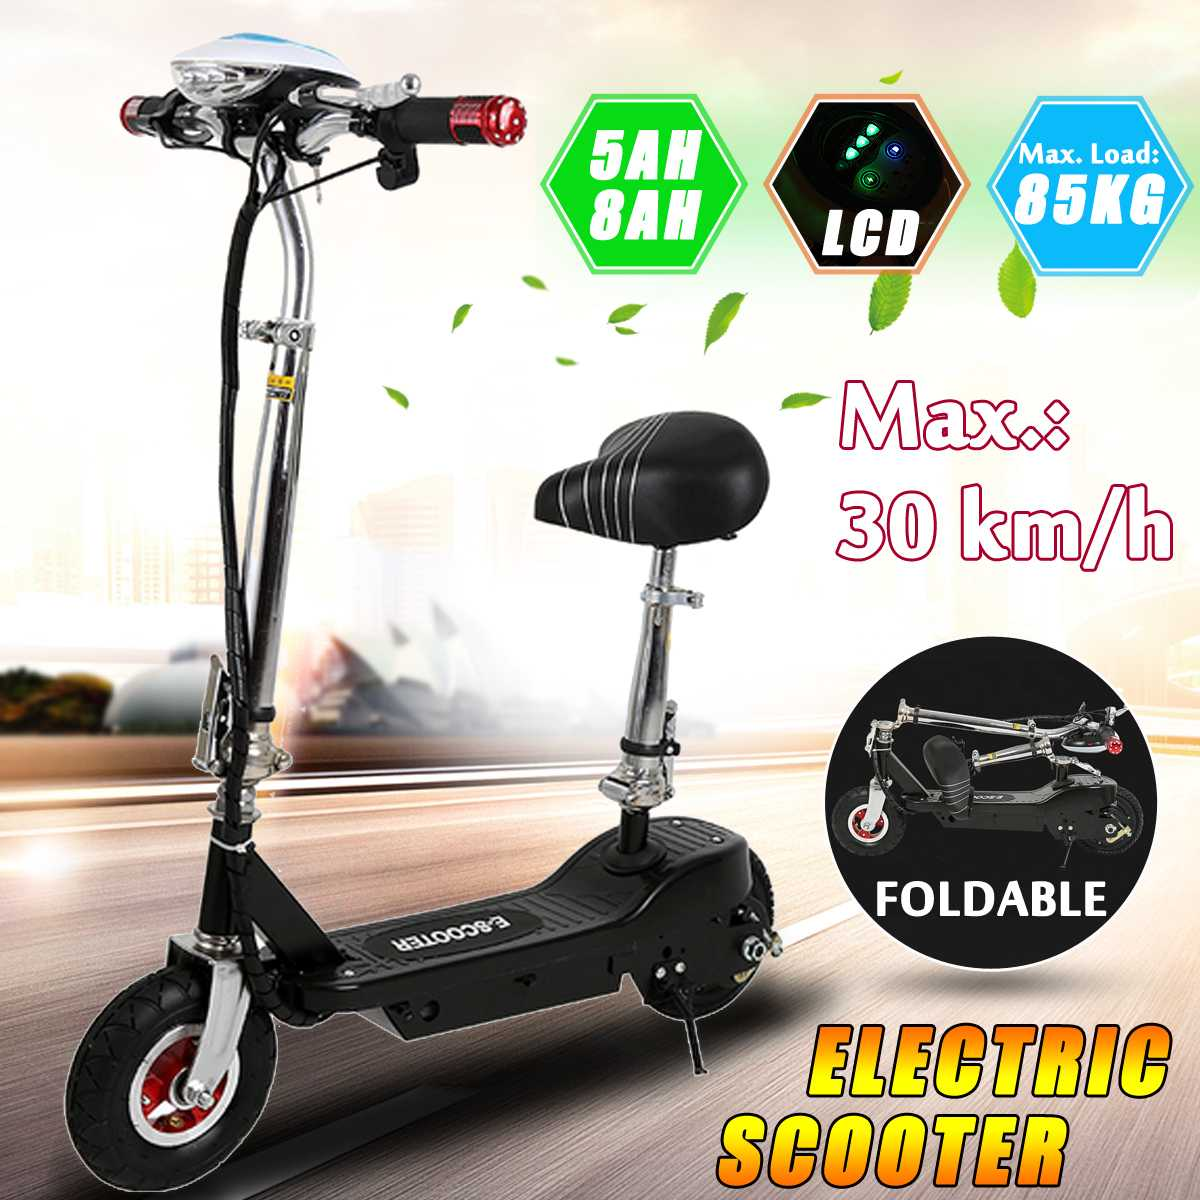 300W 36V MINI Foldable Electric Car Mobility Scooter with Seat Commute Urban Terrain Adult Cycle300W 36V MINI Foldable Electric Car Mobility Scooter with Seat Commute Urban Terrain Adult Cycle